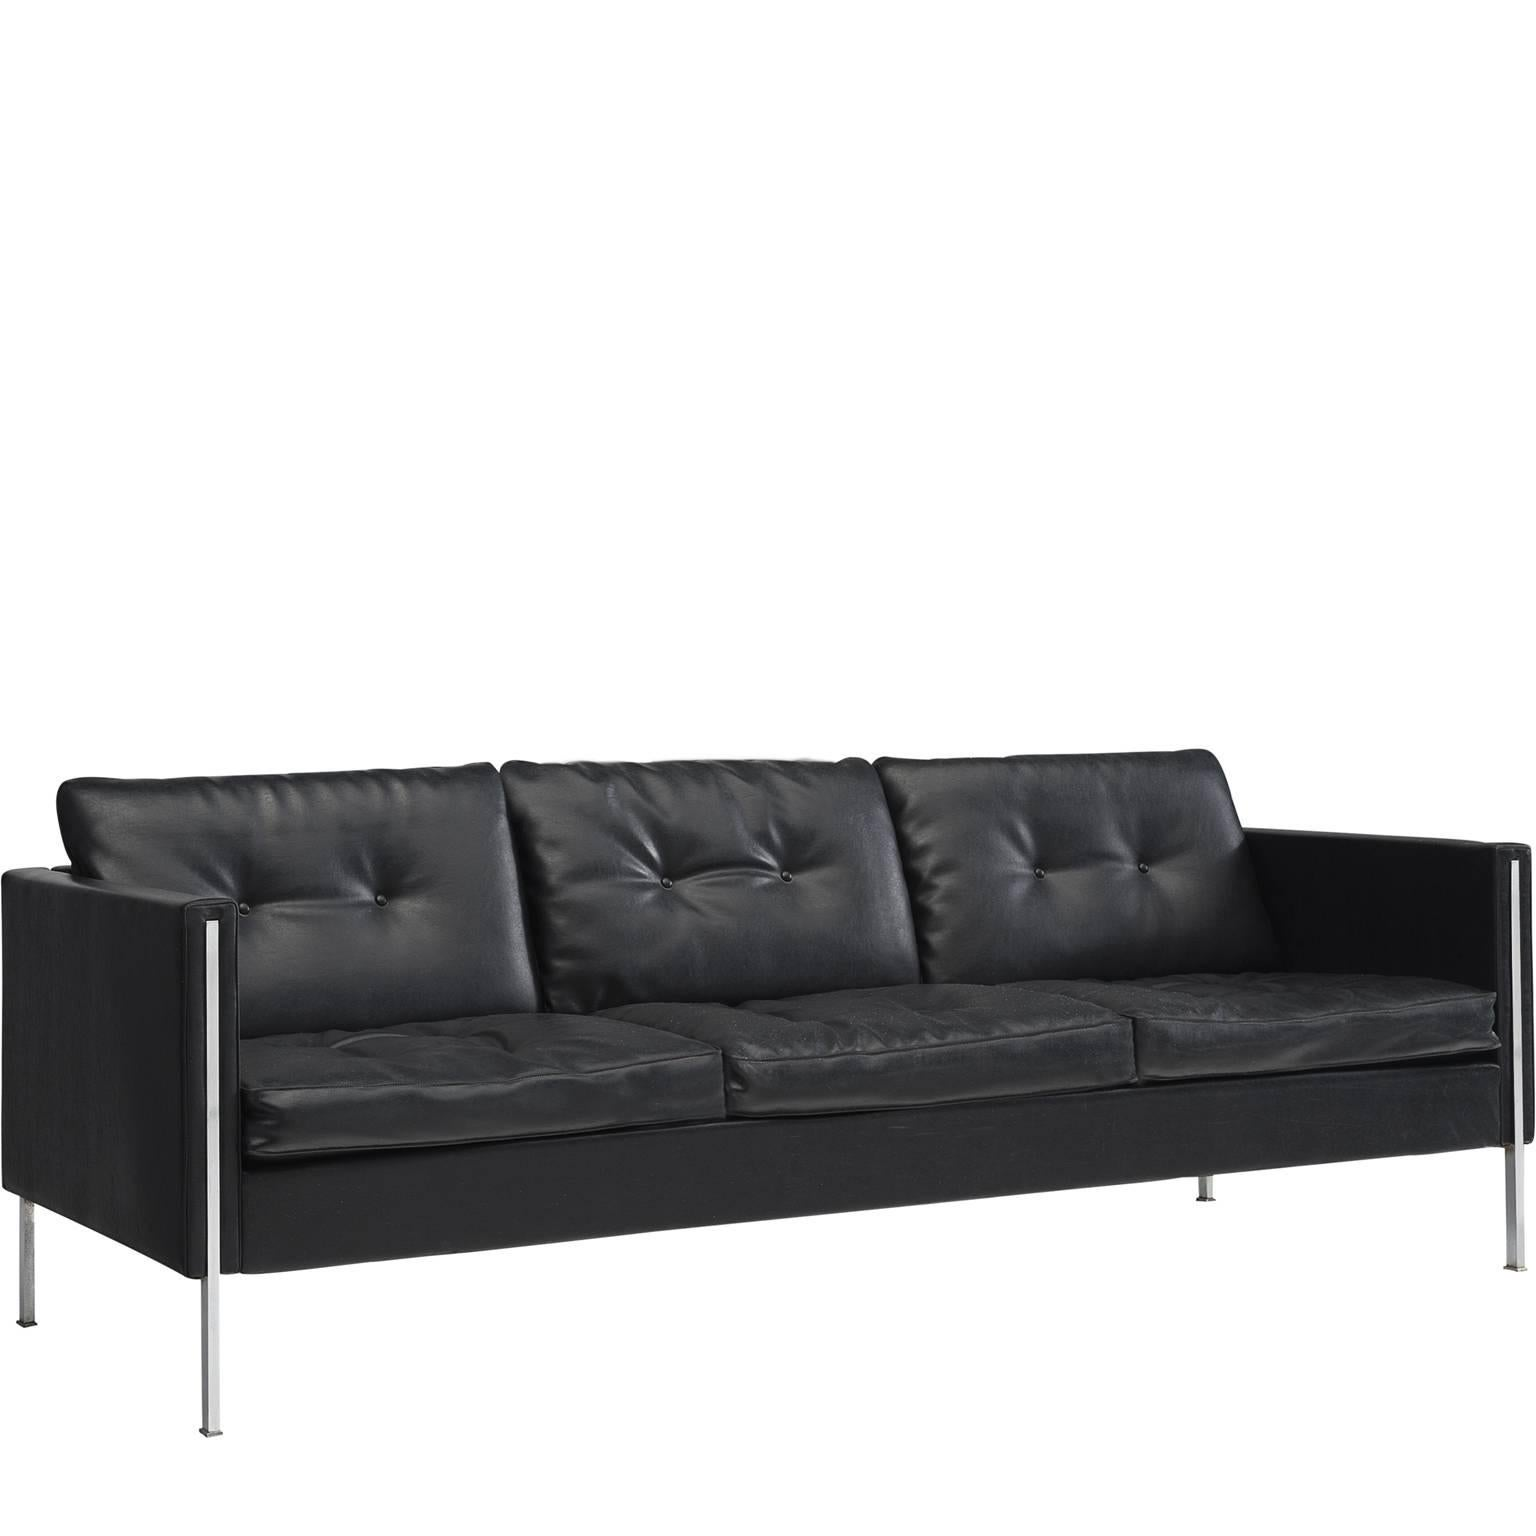 Pierre Paulin Sofa Pierre Paulin 442 Sofa In Black Faux Leather For Artifort